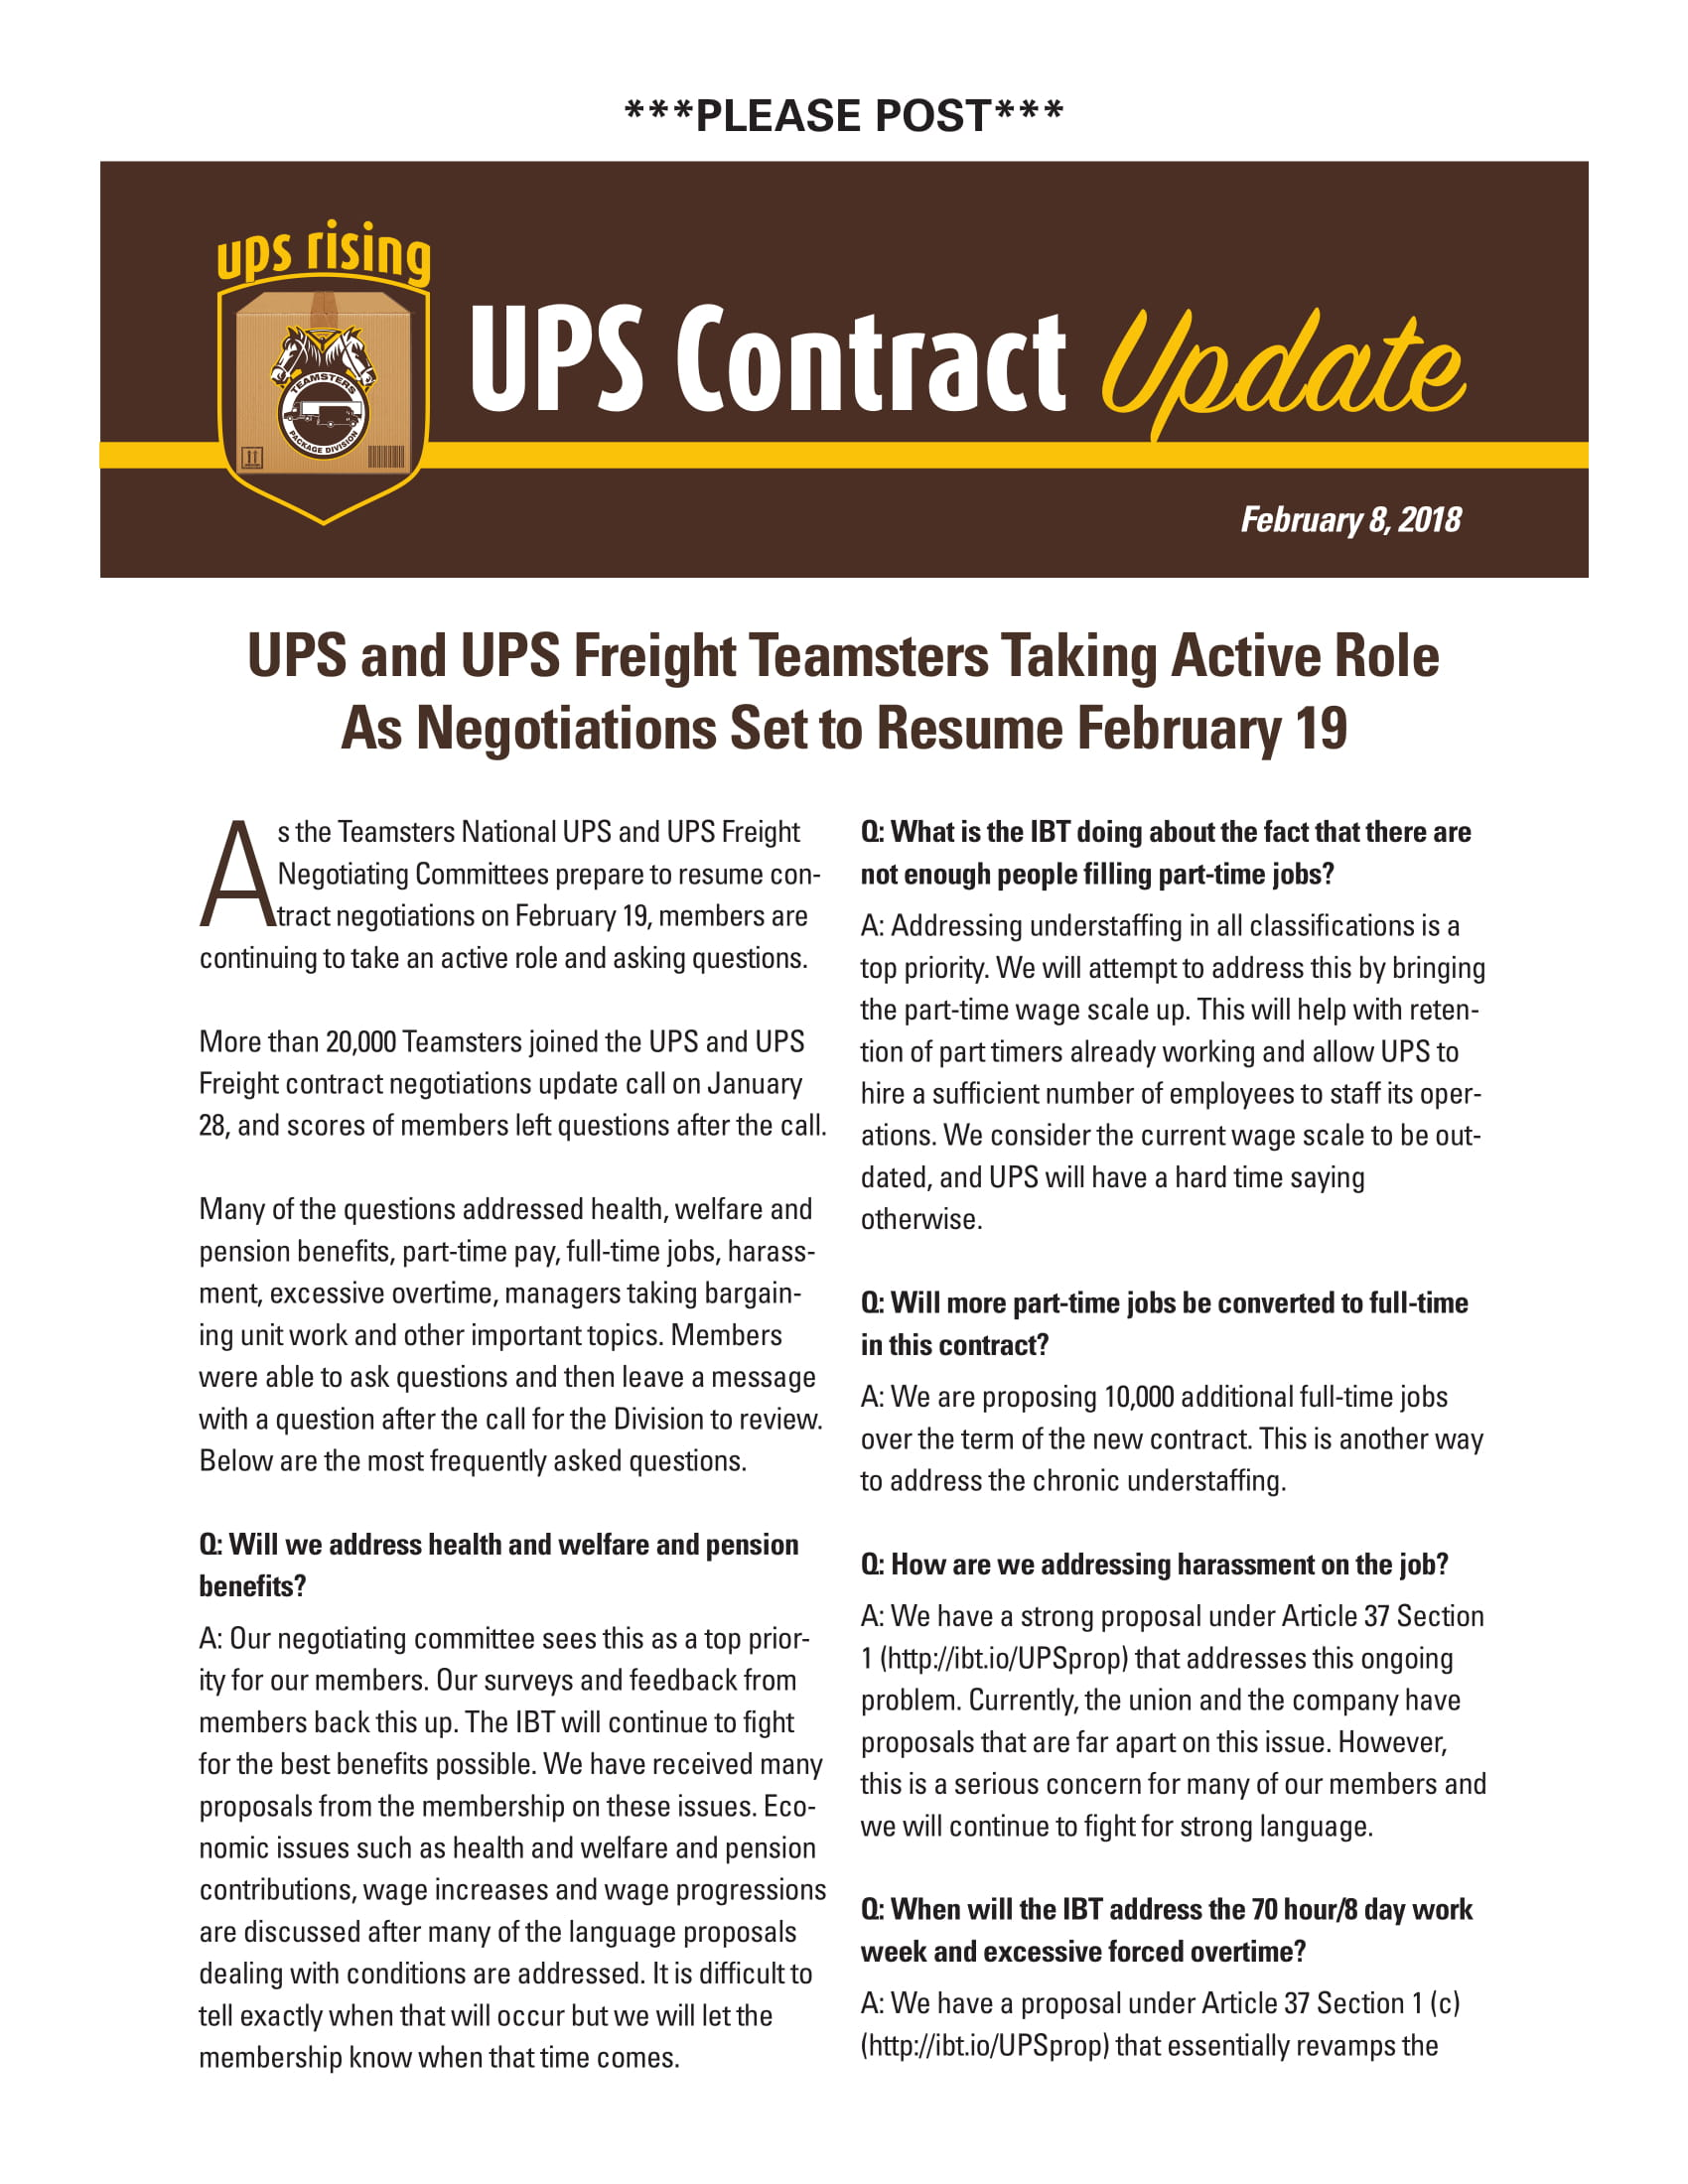 Teamsters local 600 ups contract update 282018 platinumwayz